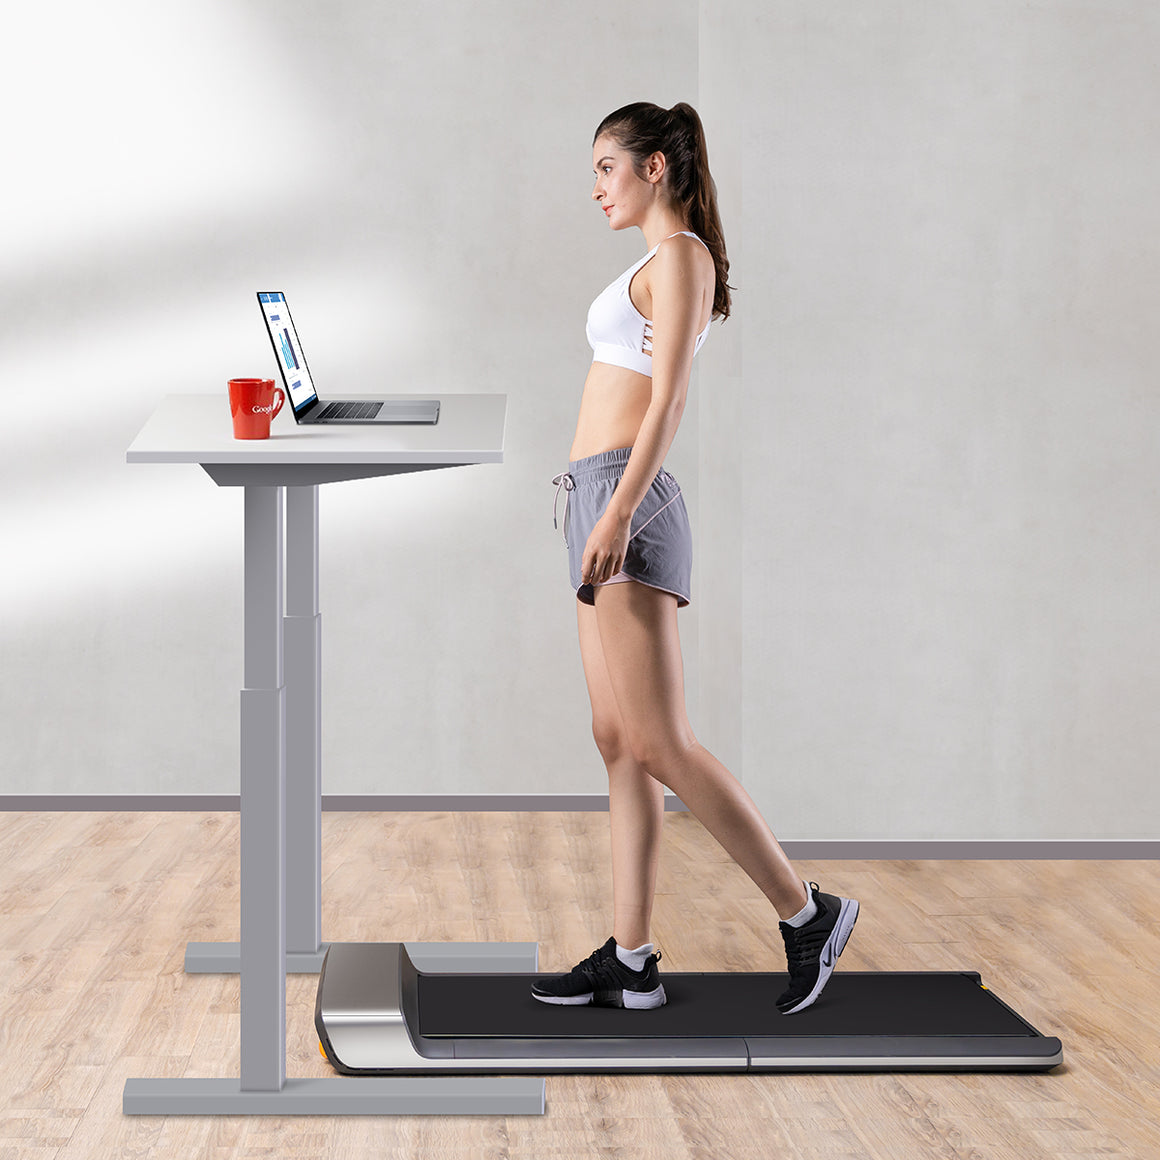 Xiaomi Mijia WalkingPad Treadmill A1 Smart Foldable Walking Machine - Carbon Gray - bebiking.com